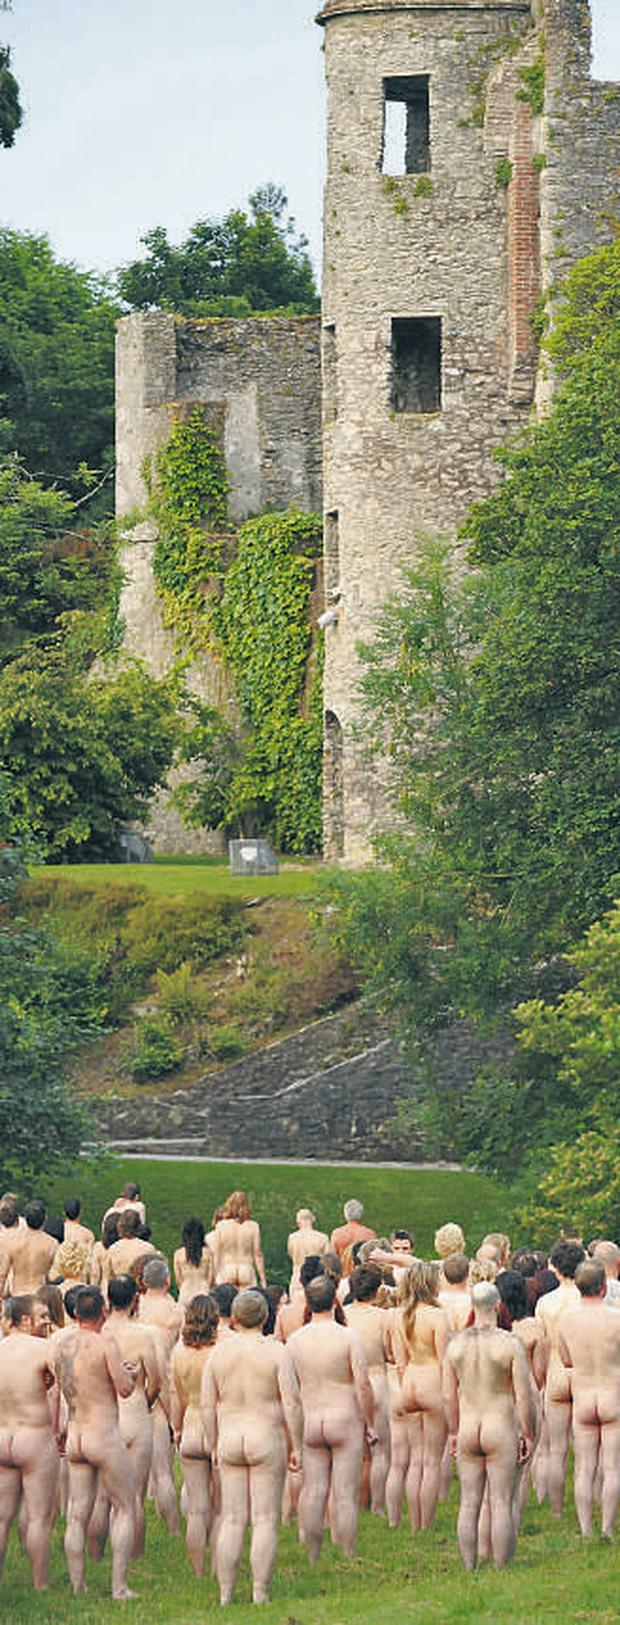 Participants avert their gaze and look instead at Blarney Castle